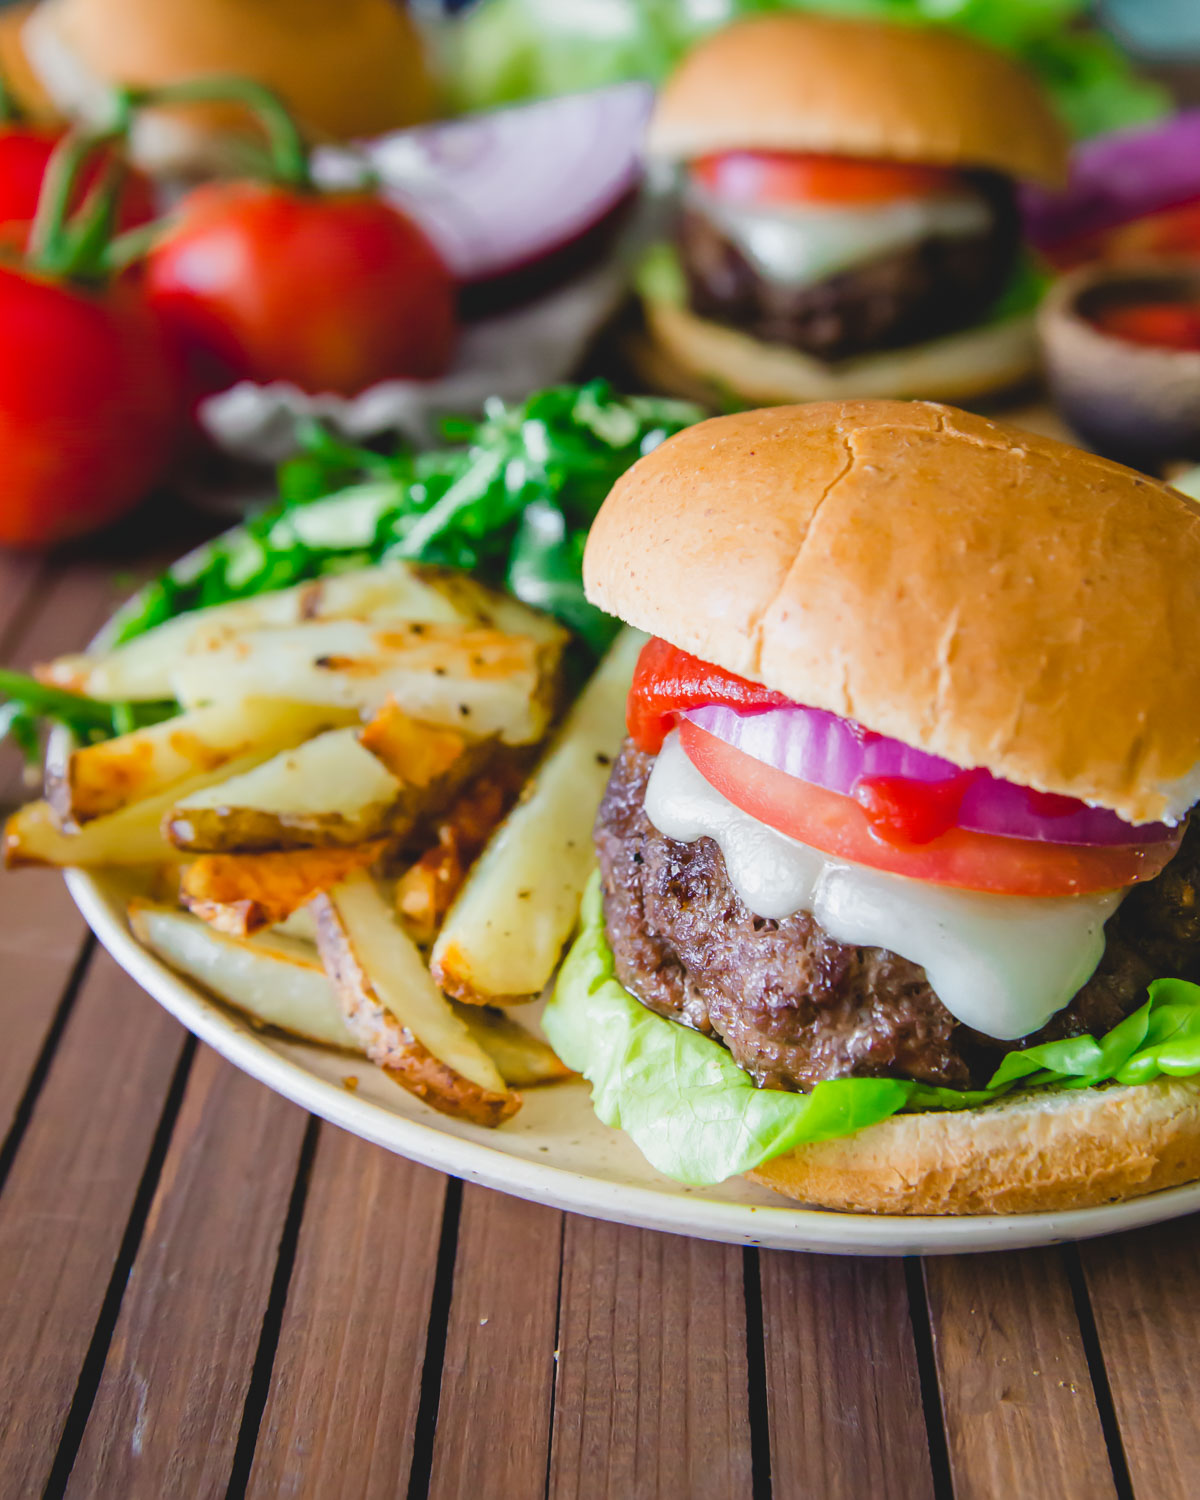 Perfectly grilled and juicy elk burger on a bun with melted cheddar, lettuce, tomato, red onion and ketchup. Served with fries and a salad.